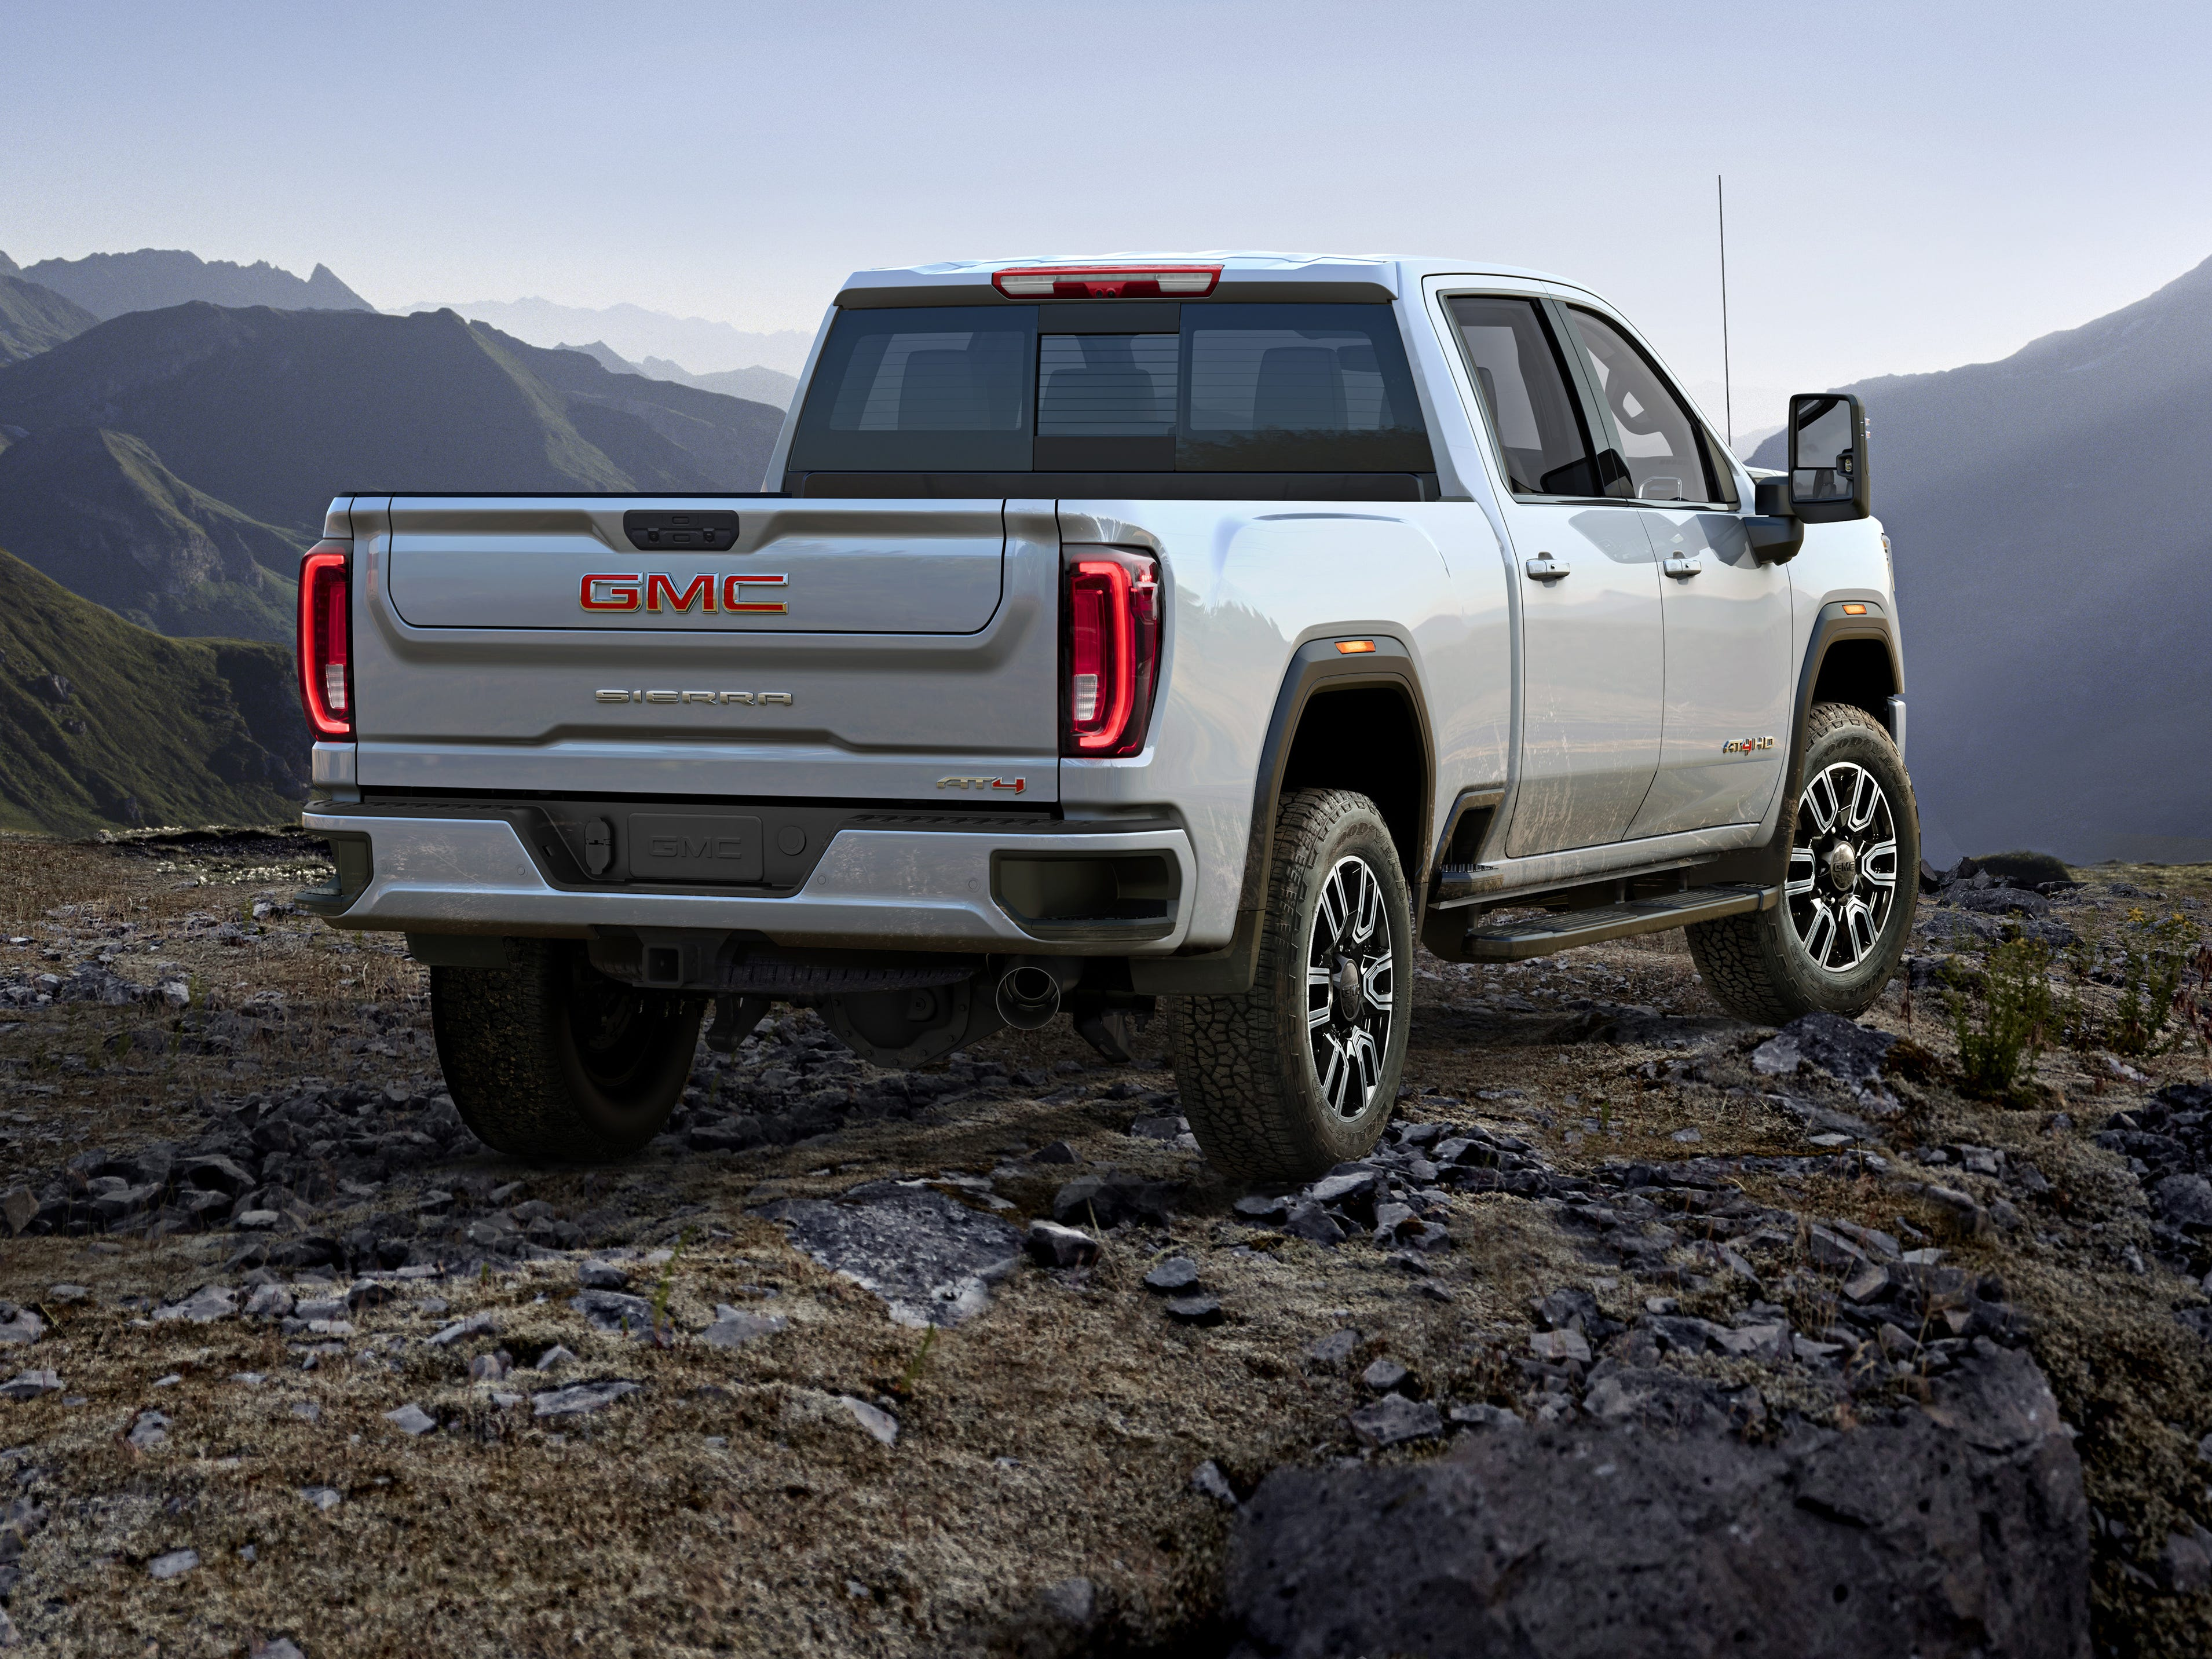 The 2020 Sierra HD has a commanding, powerful design rooted in a new architecture with larger proportions. It is taller and longer, with a more confident stance defined by a bold design that epitomizes GMC's signature refinement and technologically driven attention to detail.